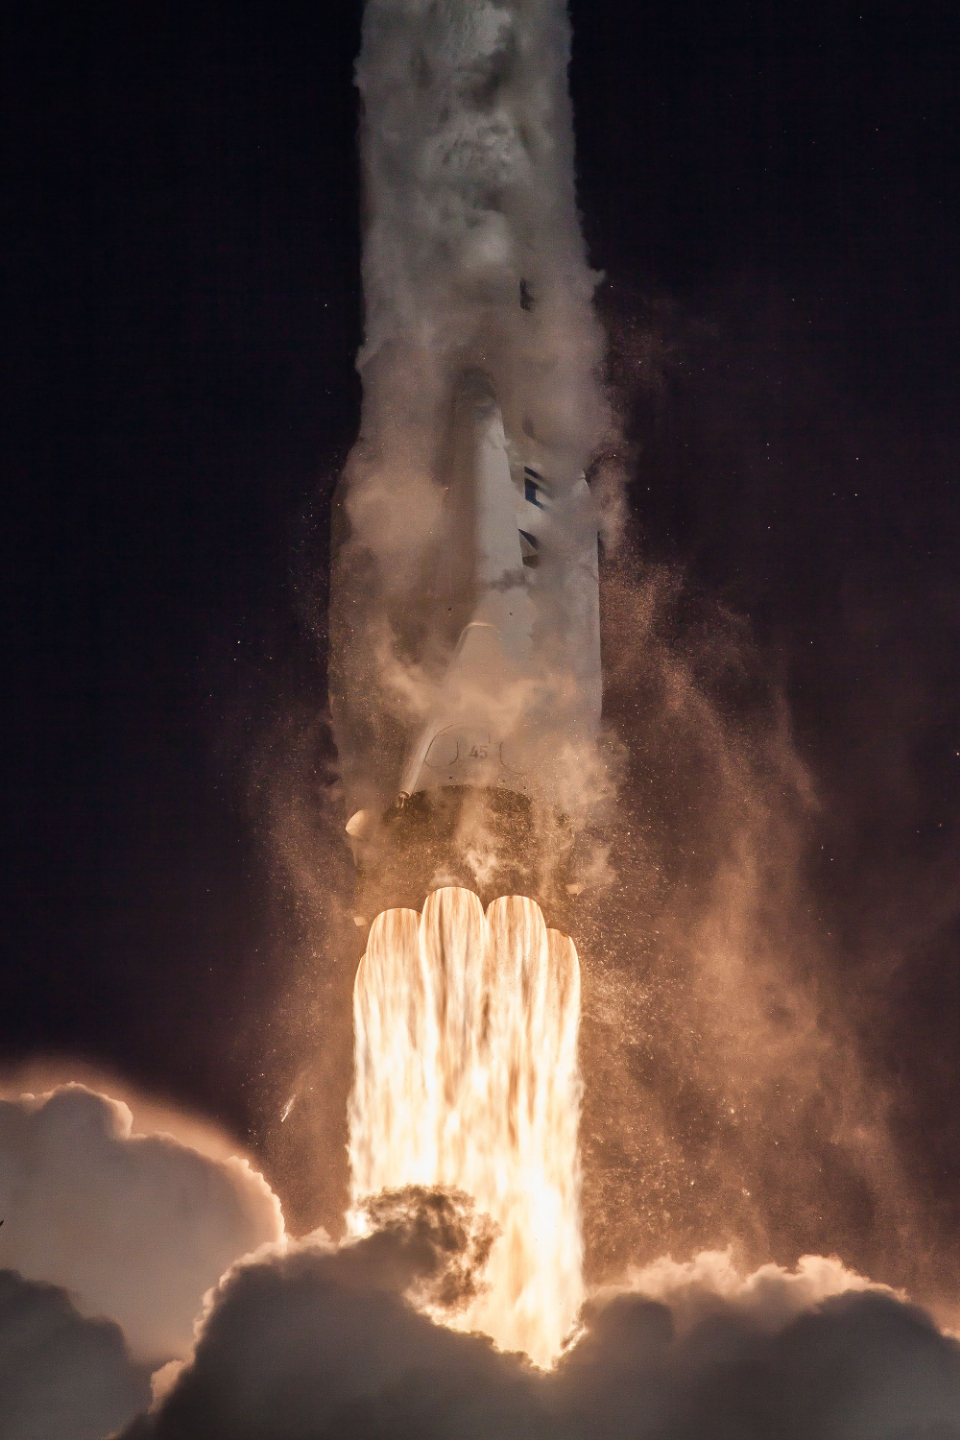 rocket liftoff explore exploration adventure journey space ignition fire flame movement action speed thrust power technology advanced modern science fly flight flying launch spaceship spacex